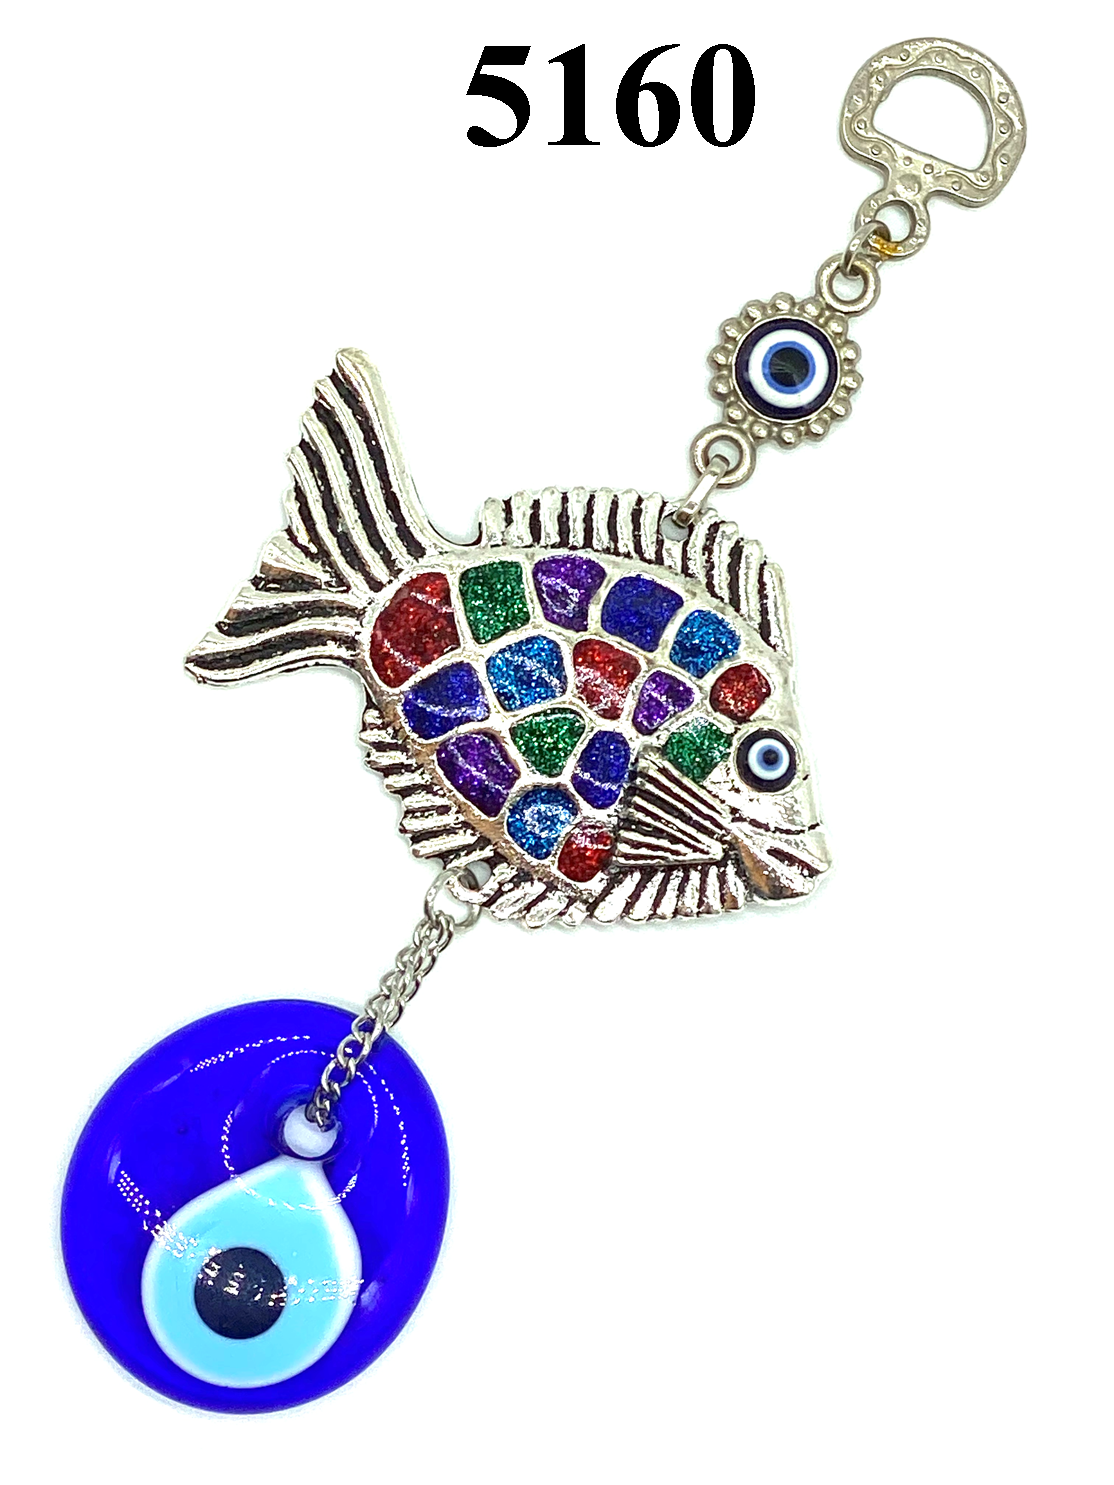 Colorful Fish with Glass Evil Eye Wall Decor #5160